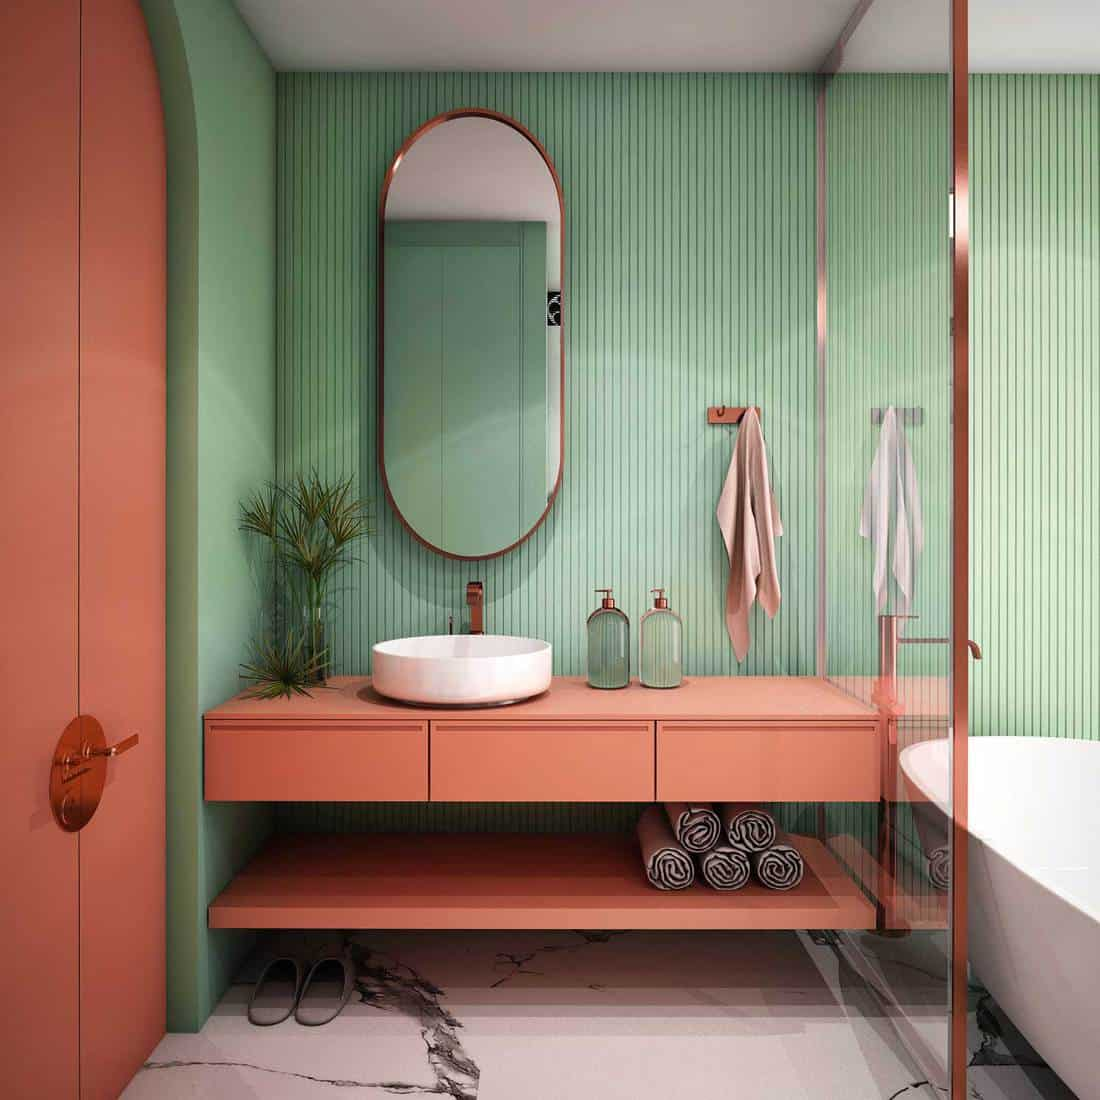 Modern red and green bathroom interior design